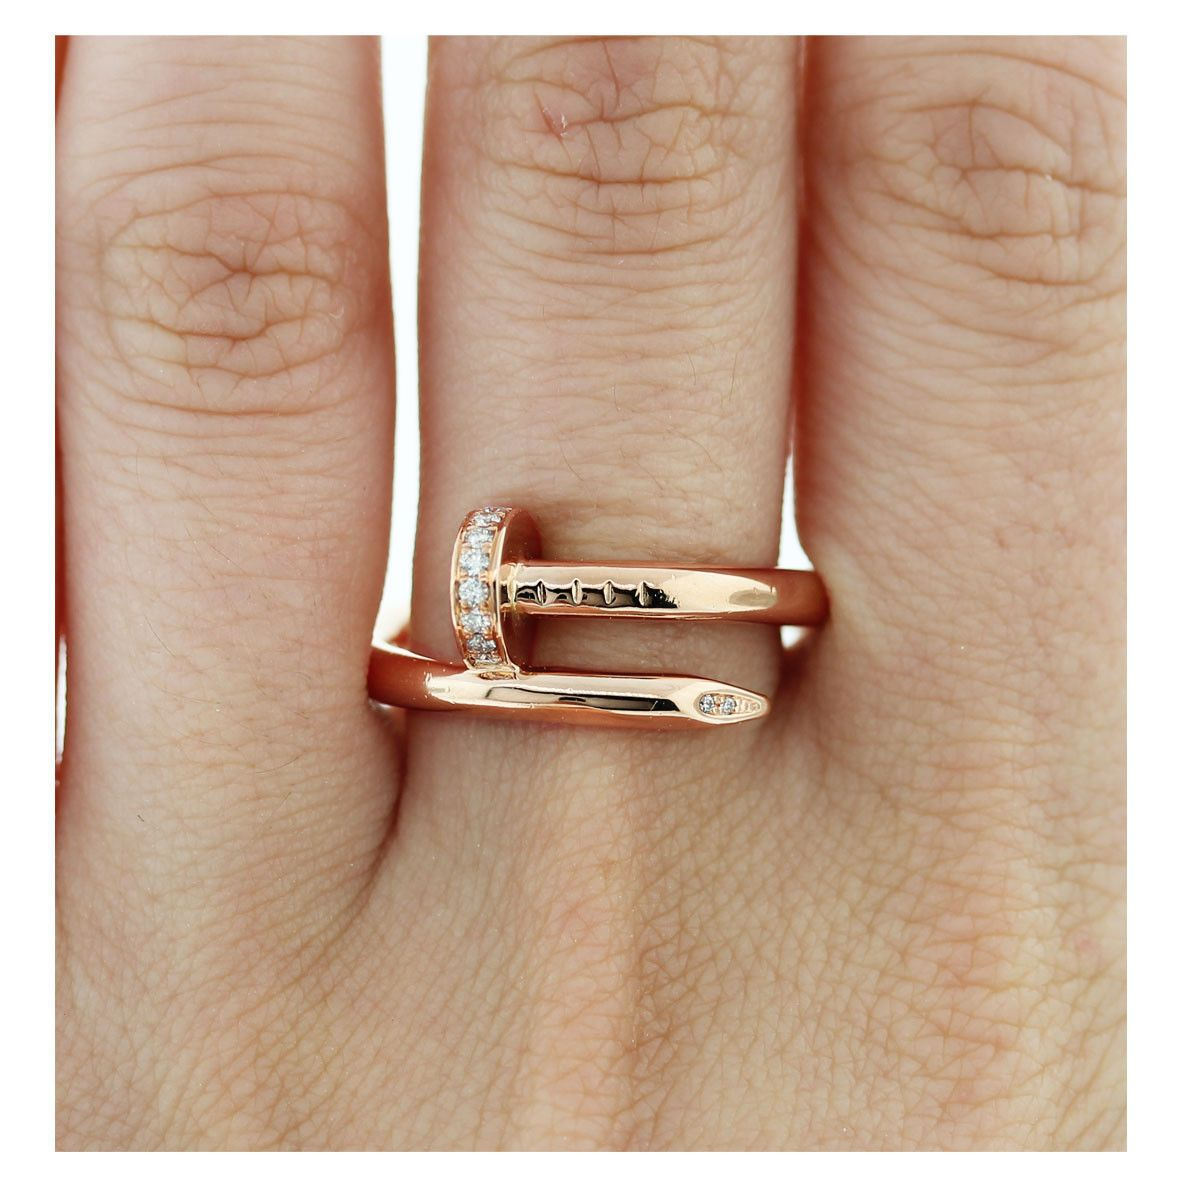 182eac22ea686 Details about Cartier 18k Rose Gold Juste Un Clou Diamond Nail Ring ...